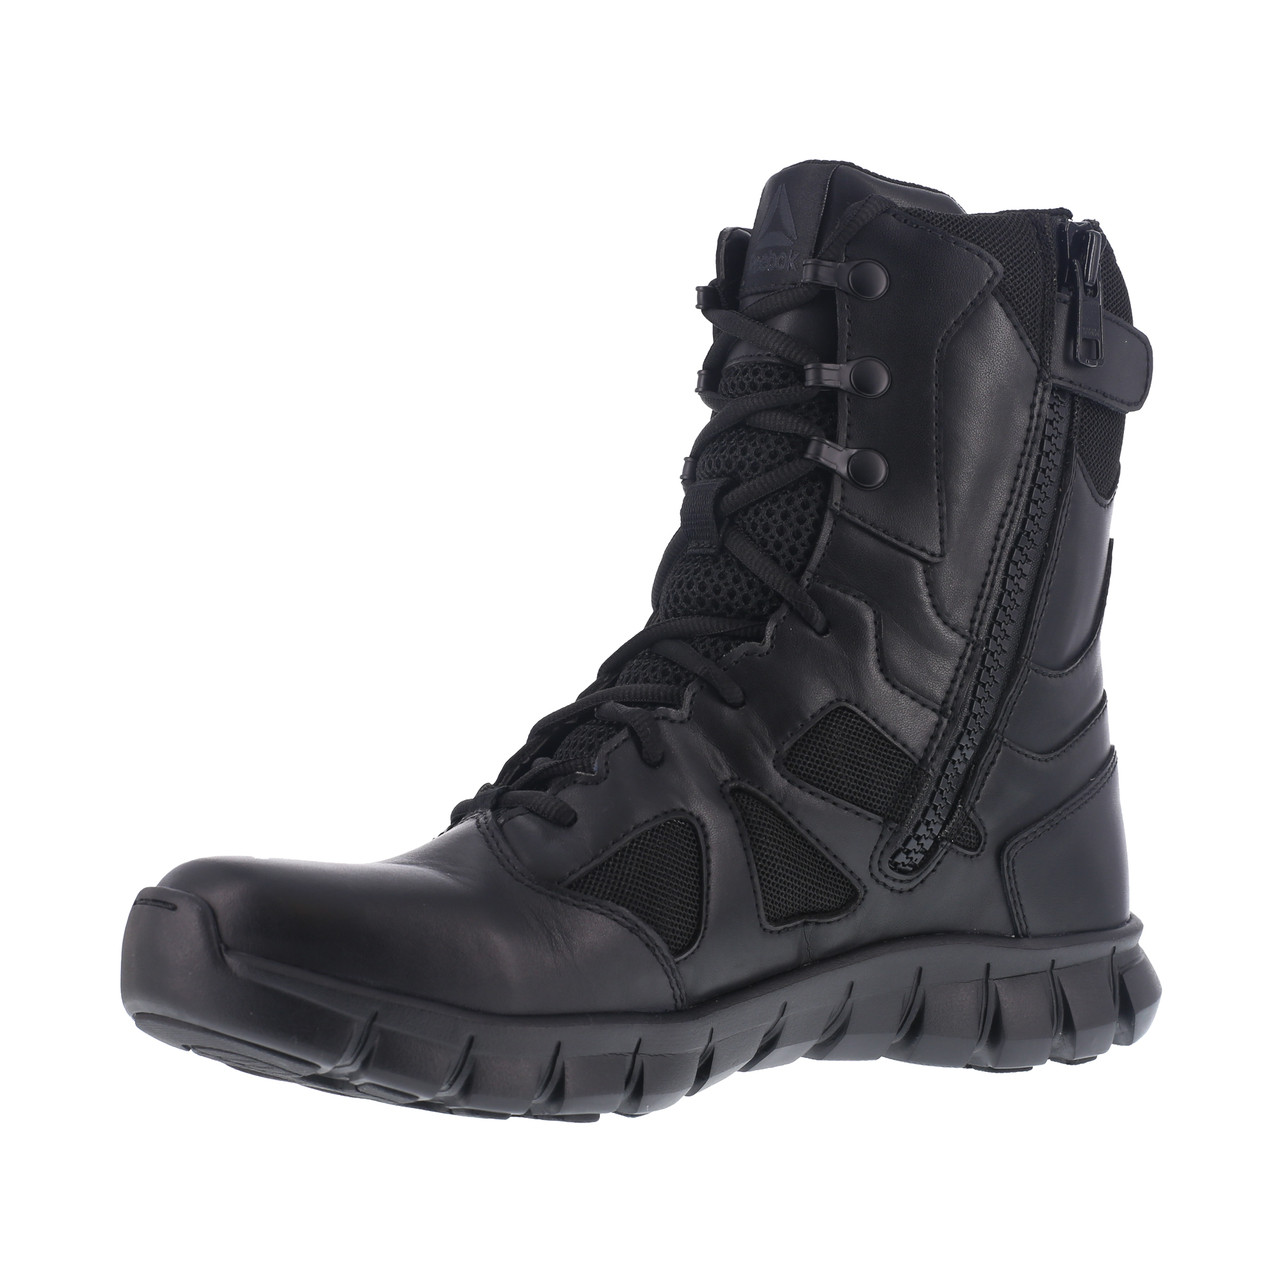 66c957fa0ee372 Men s RB8806 Sublite Cushion Tactical 8